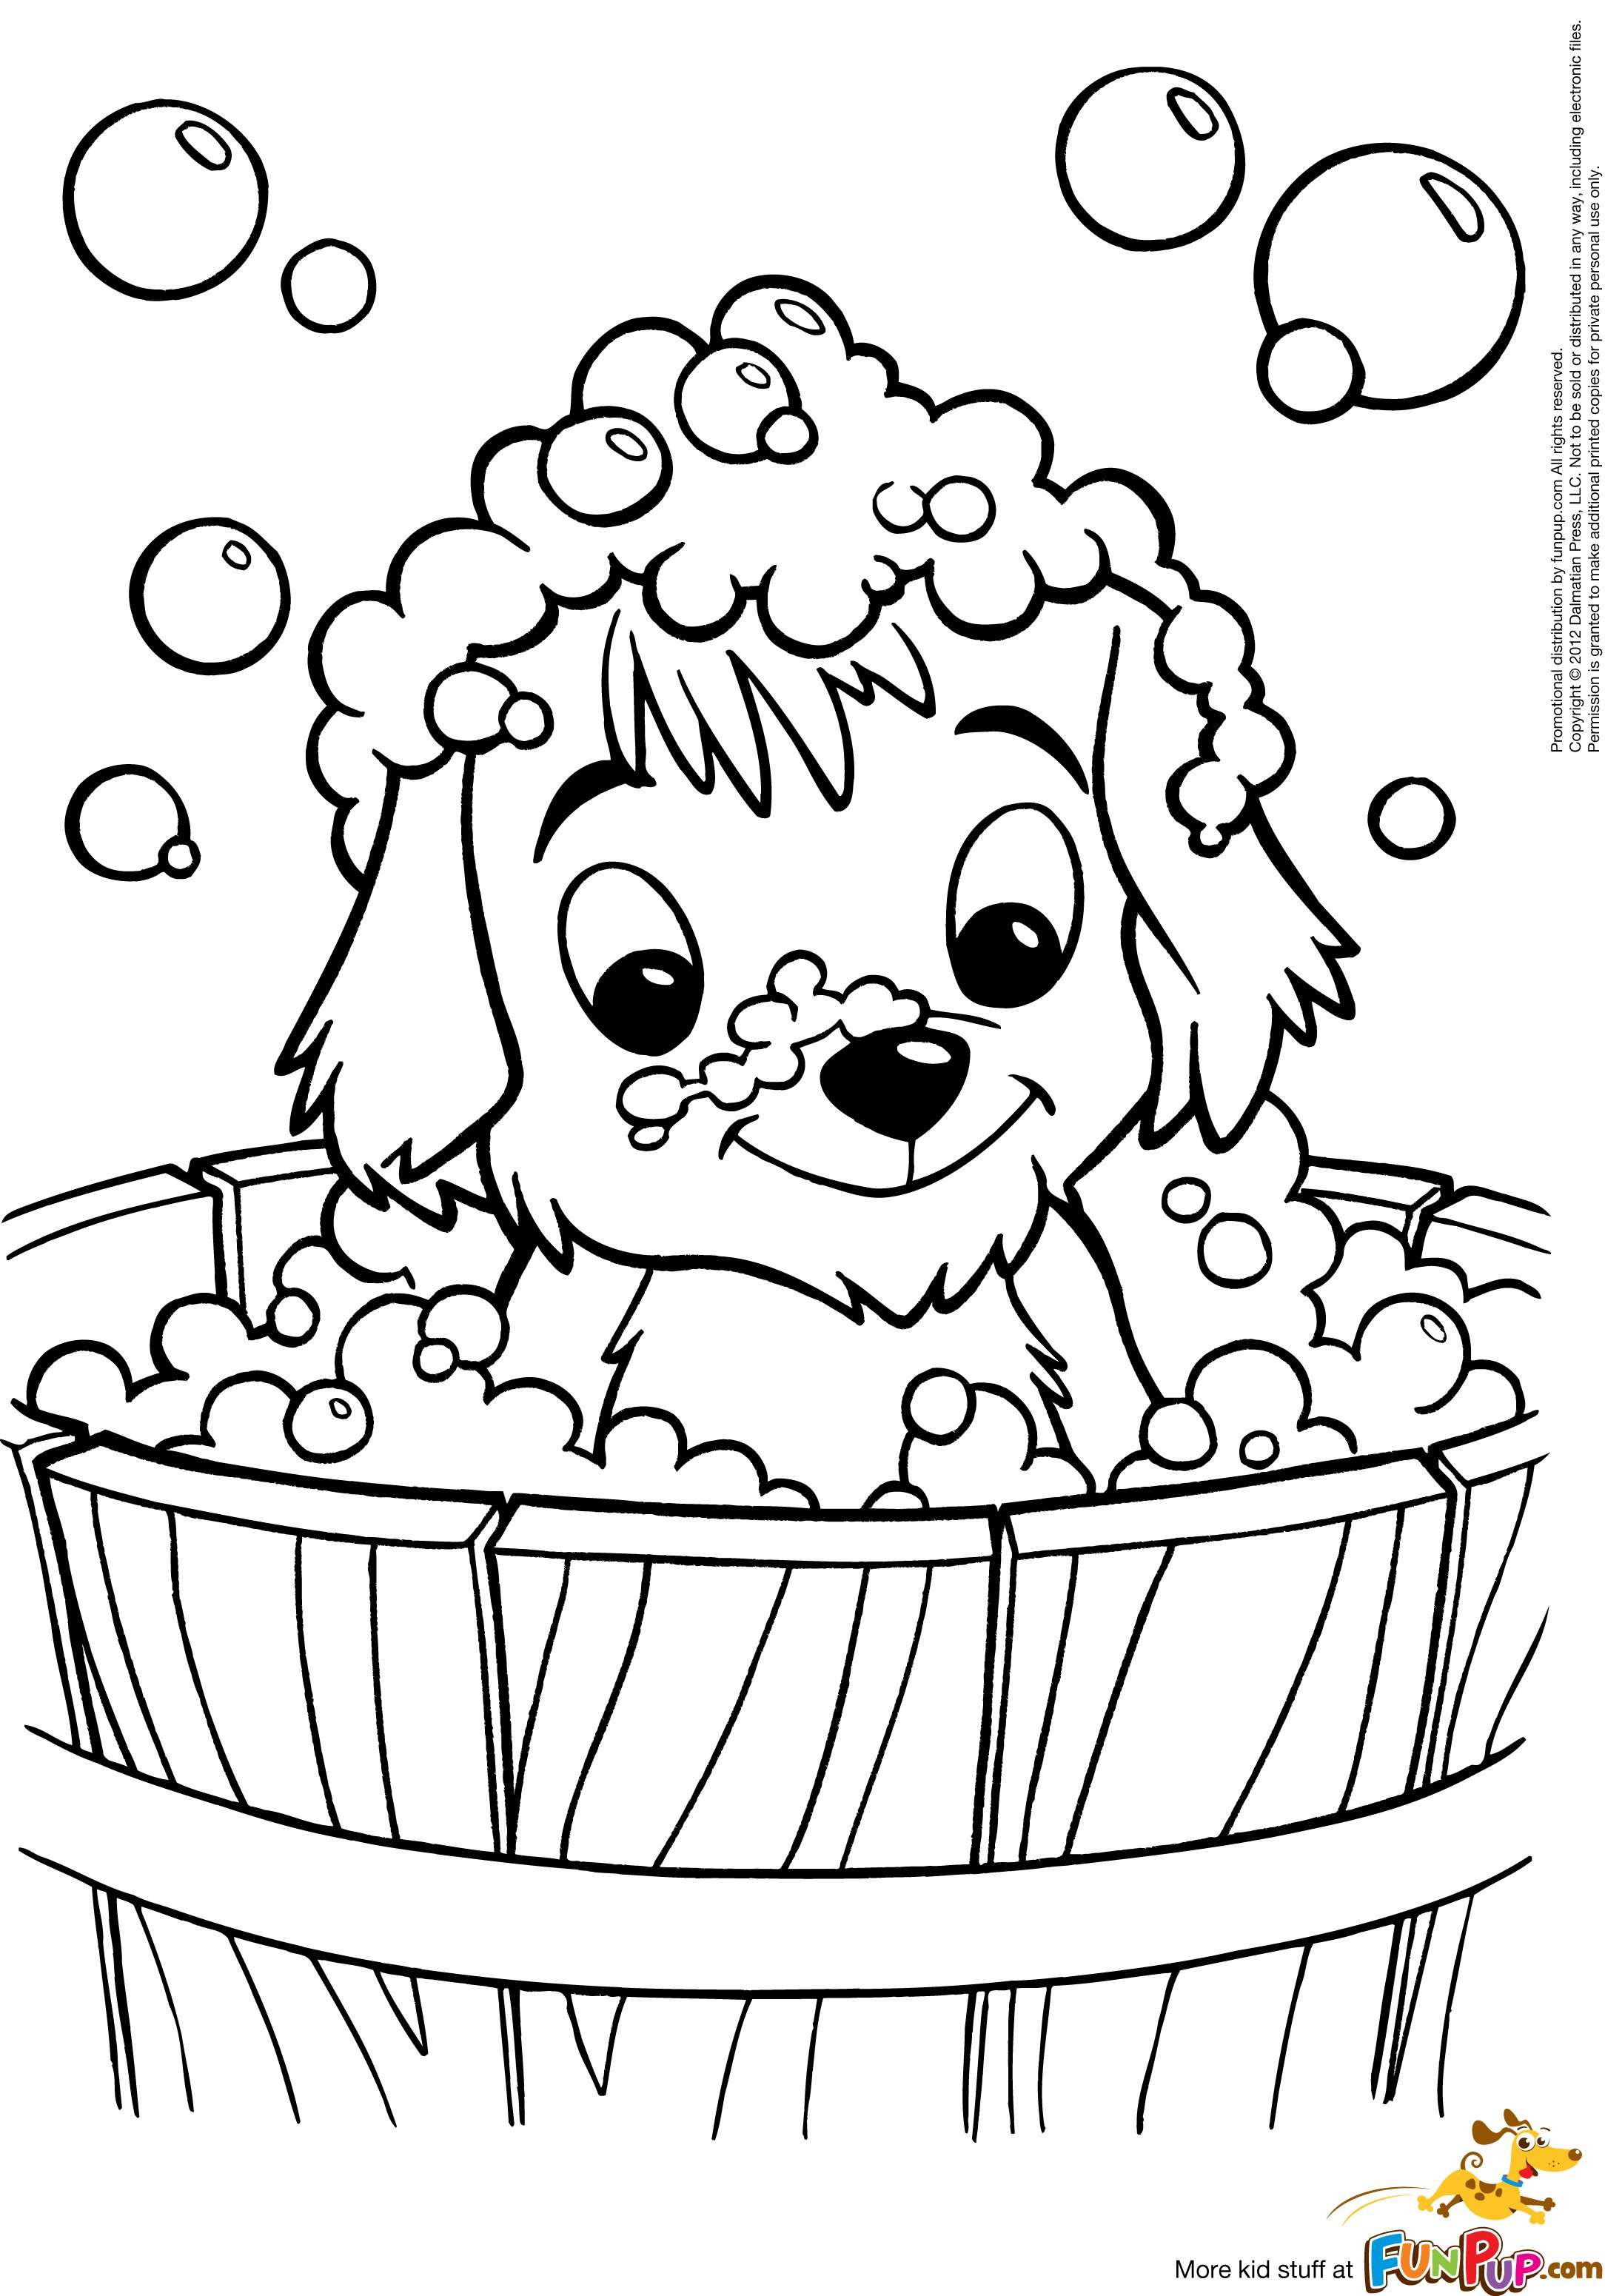 2168x3101 Imagination Puppies Coloring Pages Dog Love Ok Pictures Page